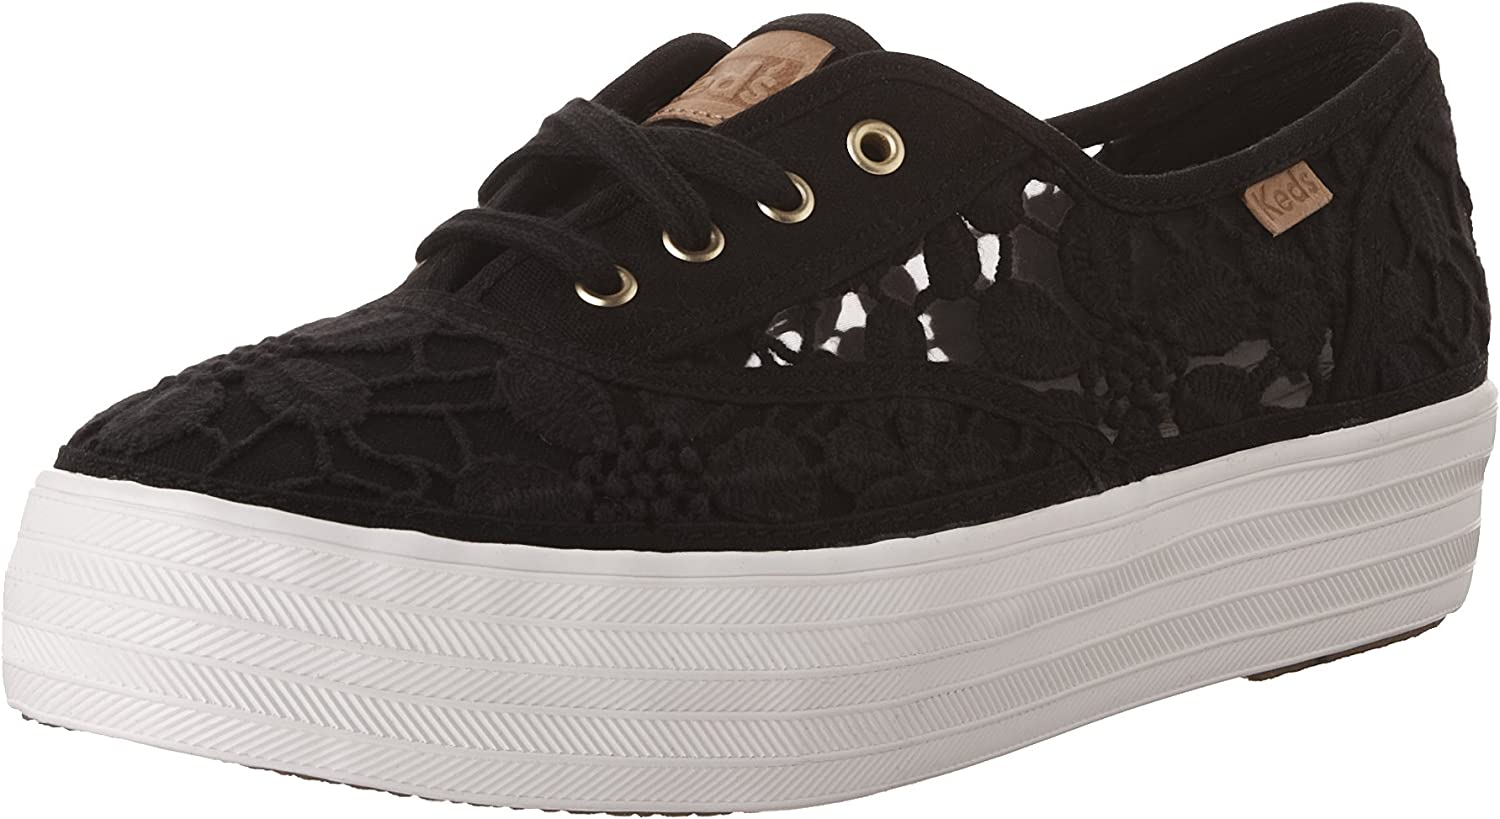 Keds Women's Triple Vintage Crochet Sneakers